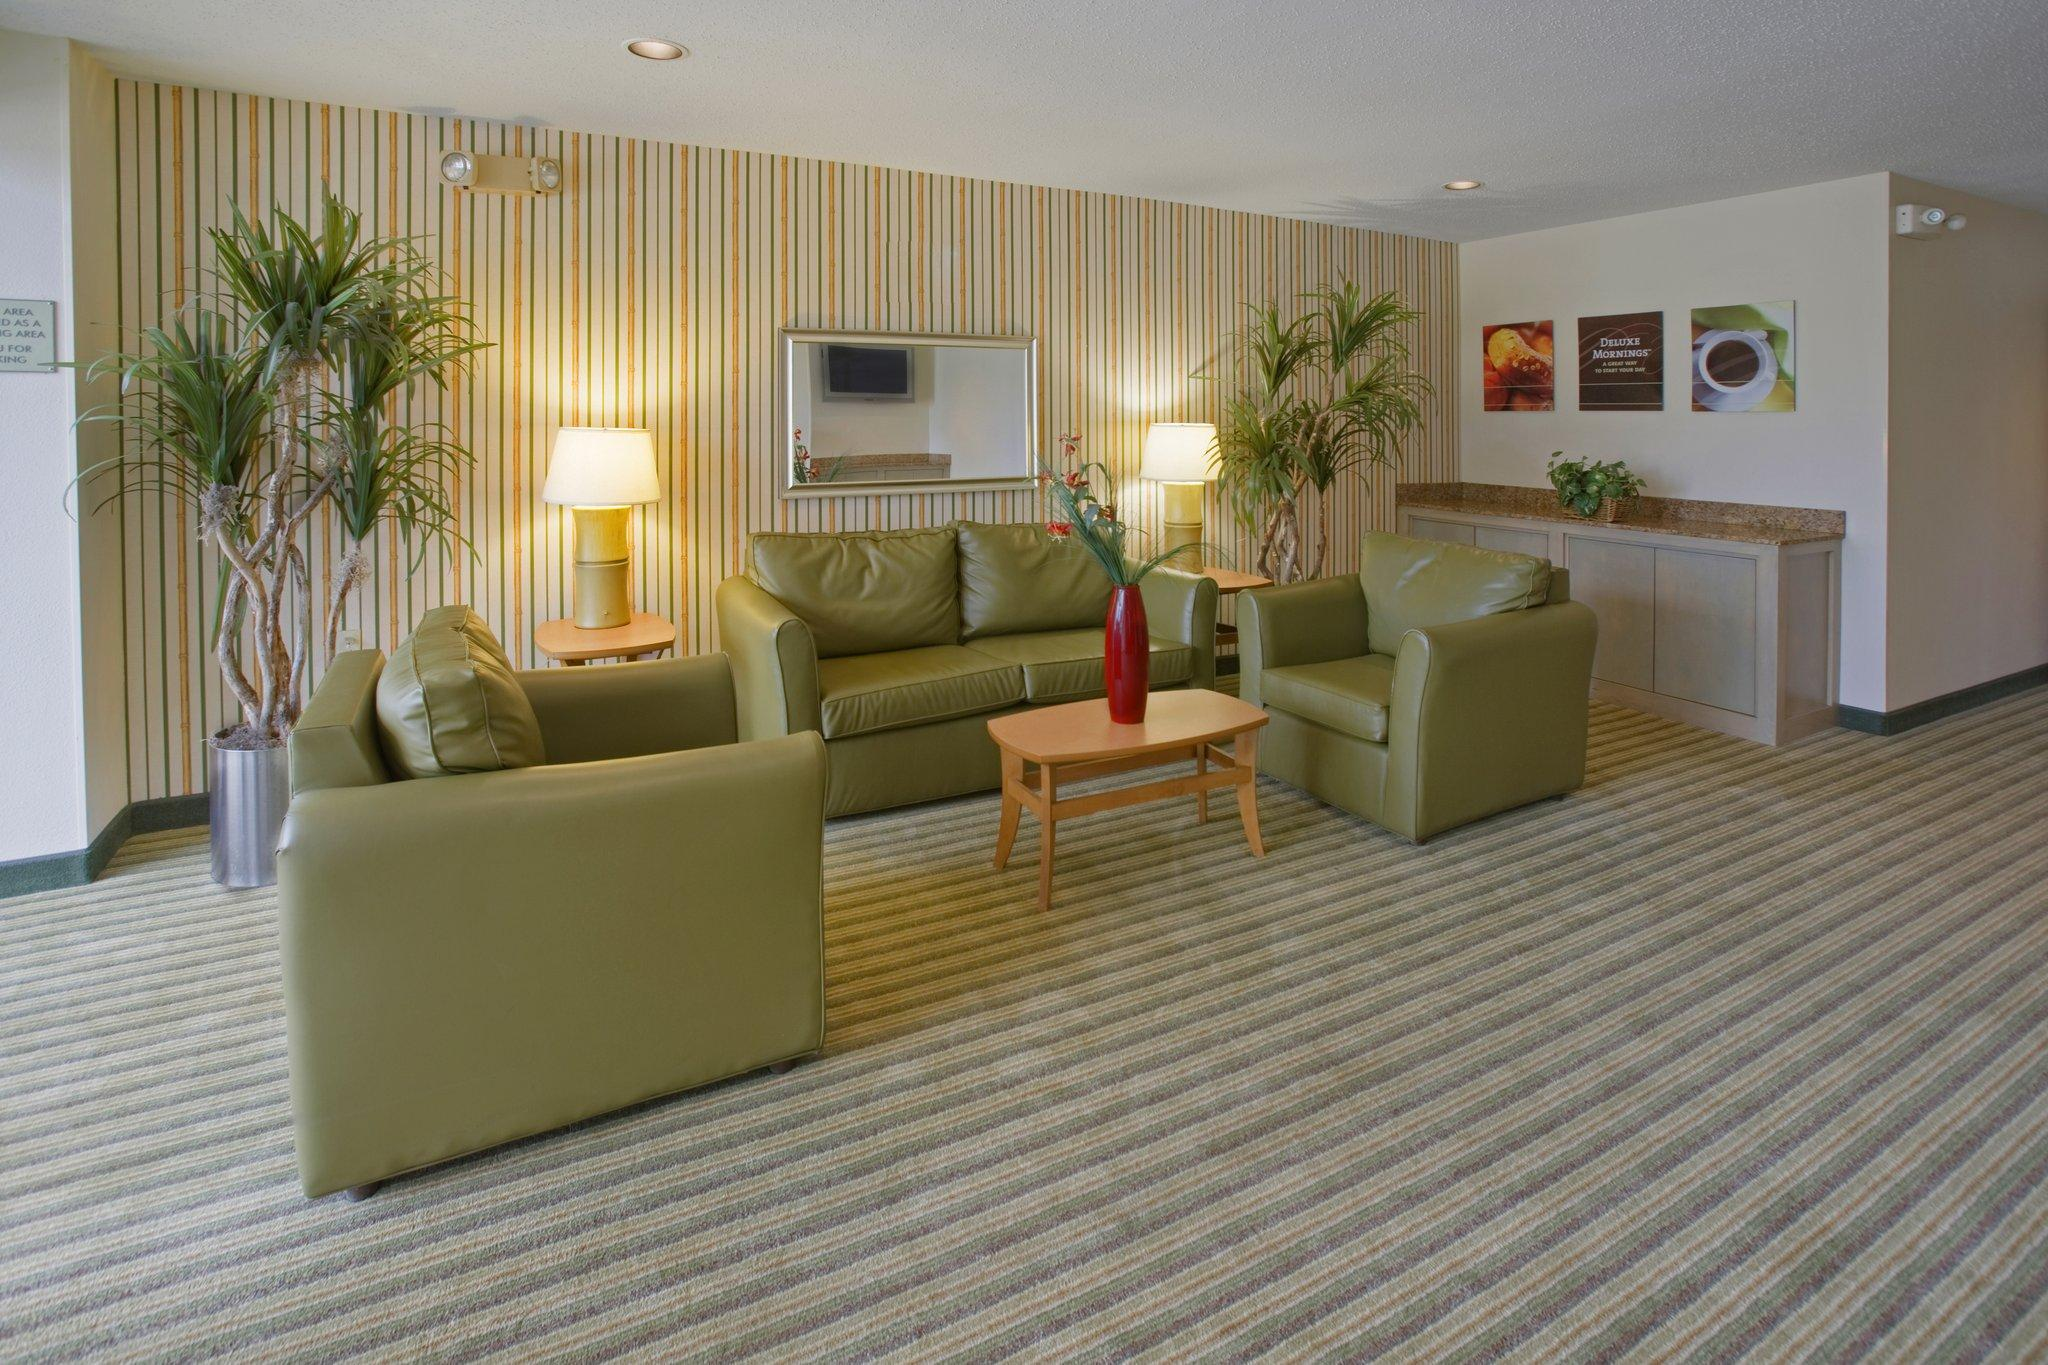 Extended Stay America - Chicago - O'Hare - South